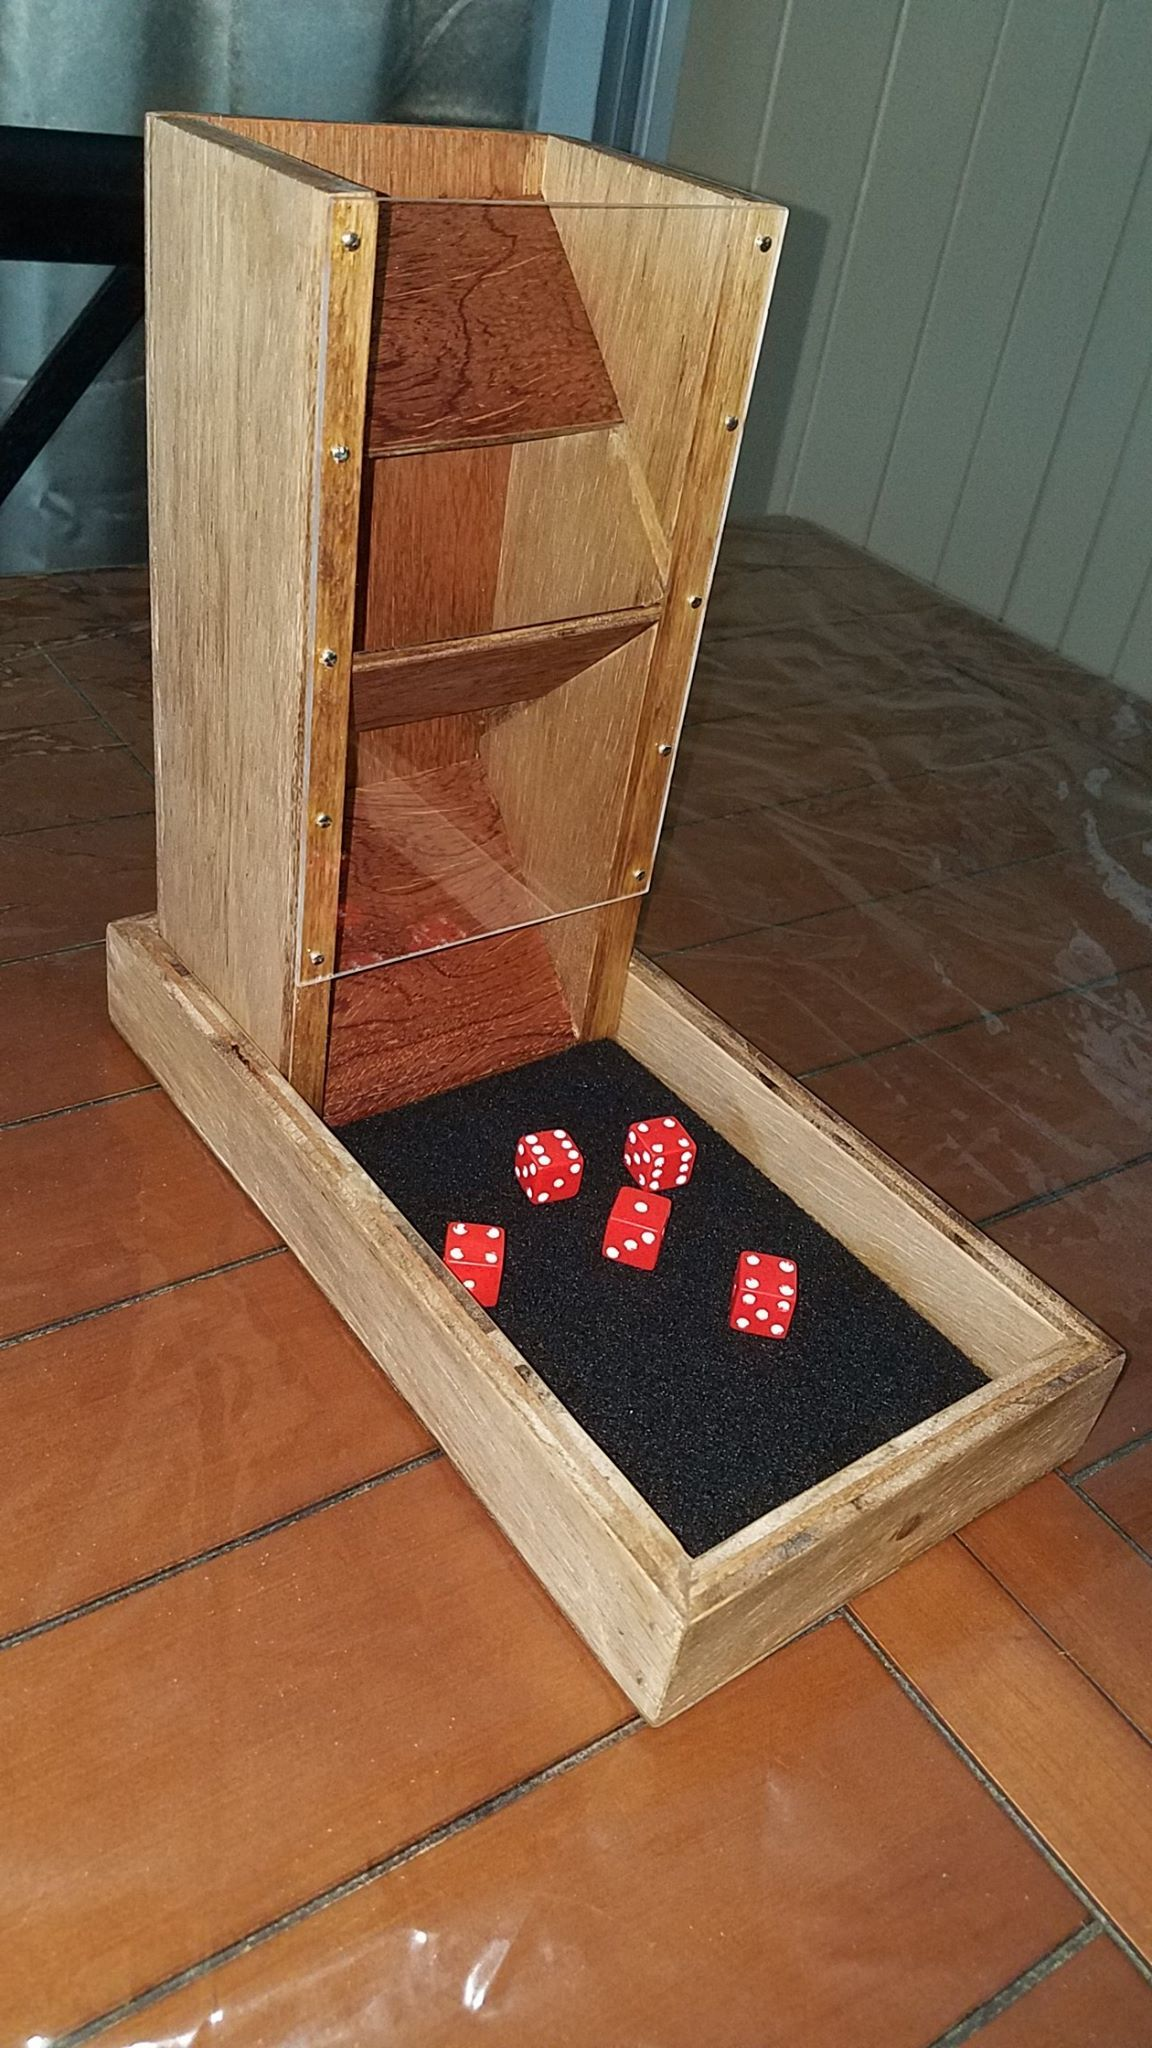 Homemade dice tower. Simple but effective! Dice tower